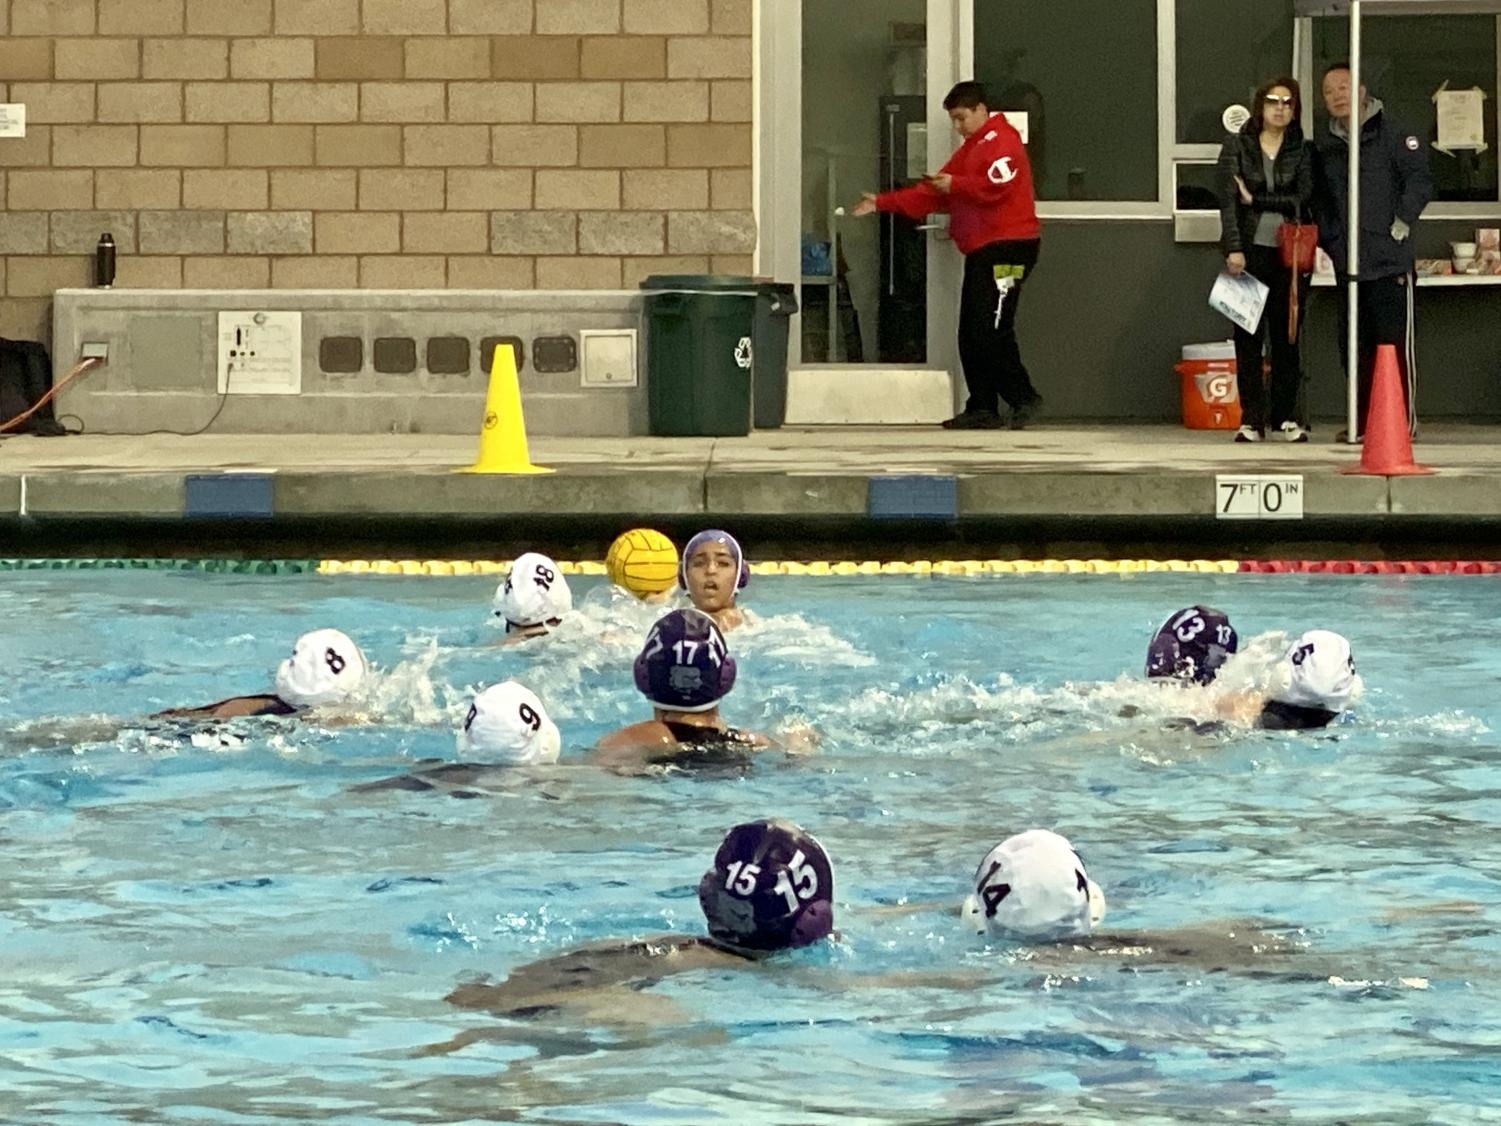 The Bulldogs played against Crean Lutheran High's first girls' water polo team, which allowed them to practice new defensive techniques and learn how to adapt to different playing styles.